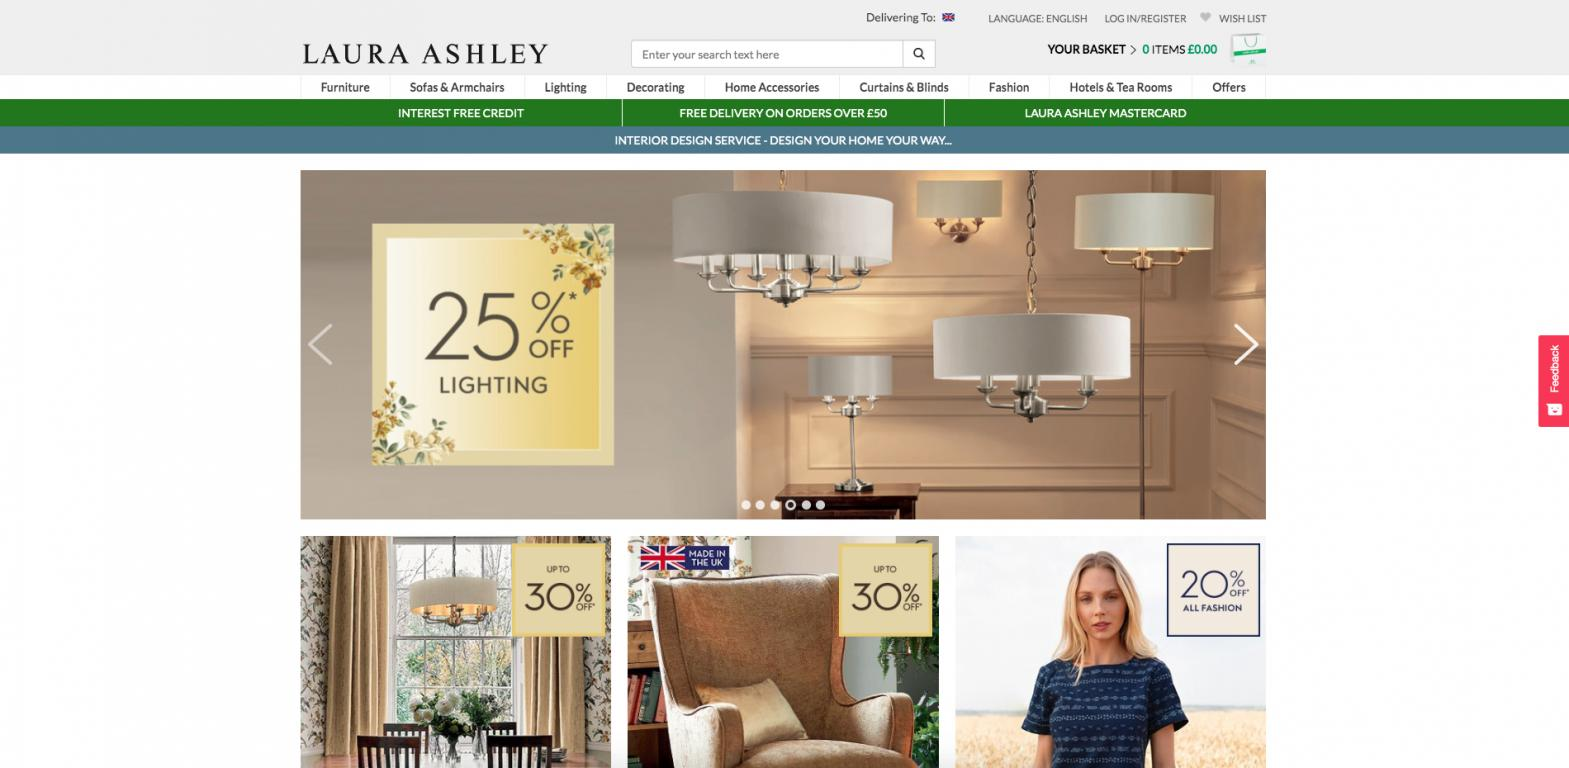 Laura Ashley website screenshot